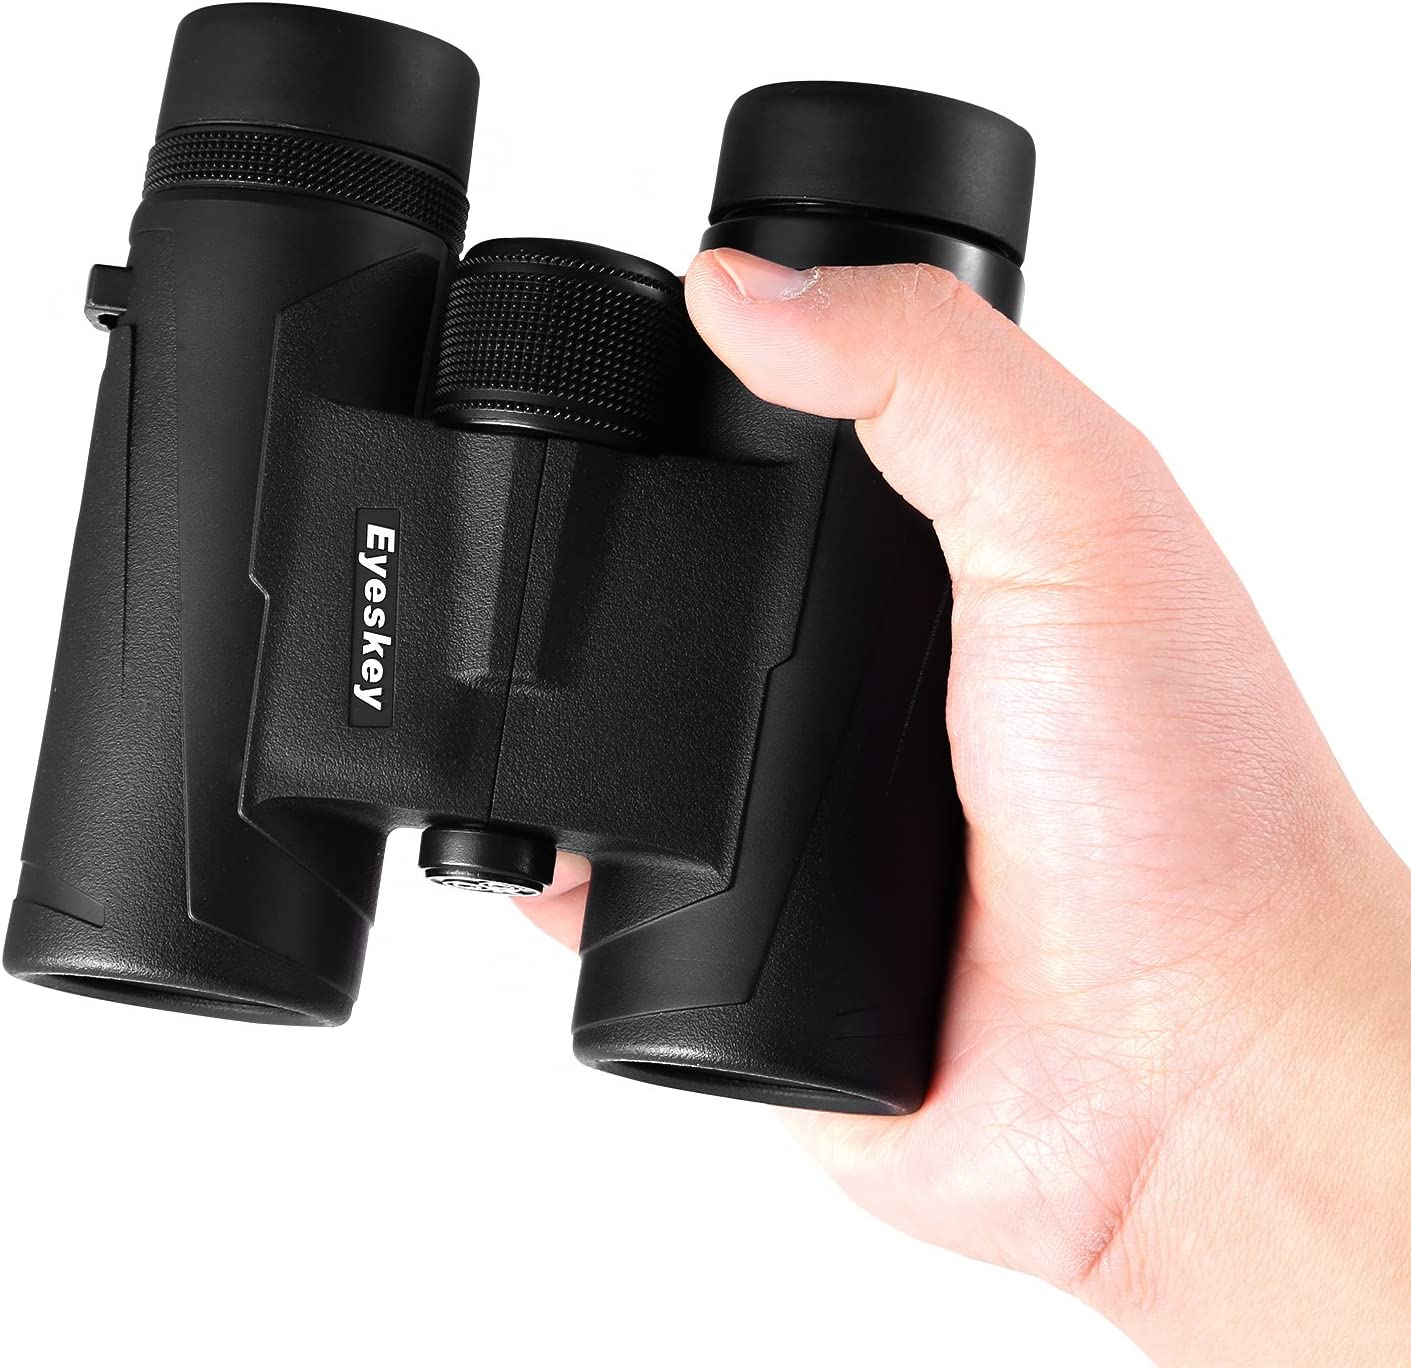 Eyeskey 10x32 Professional Waterproof Binoculars for Adults Compact and Lightweight Best partner for Your Traveling Outdoor activities and Daily Use